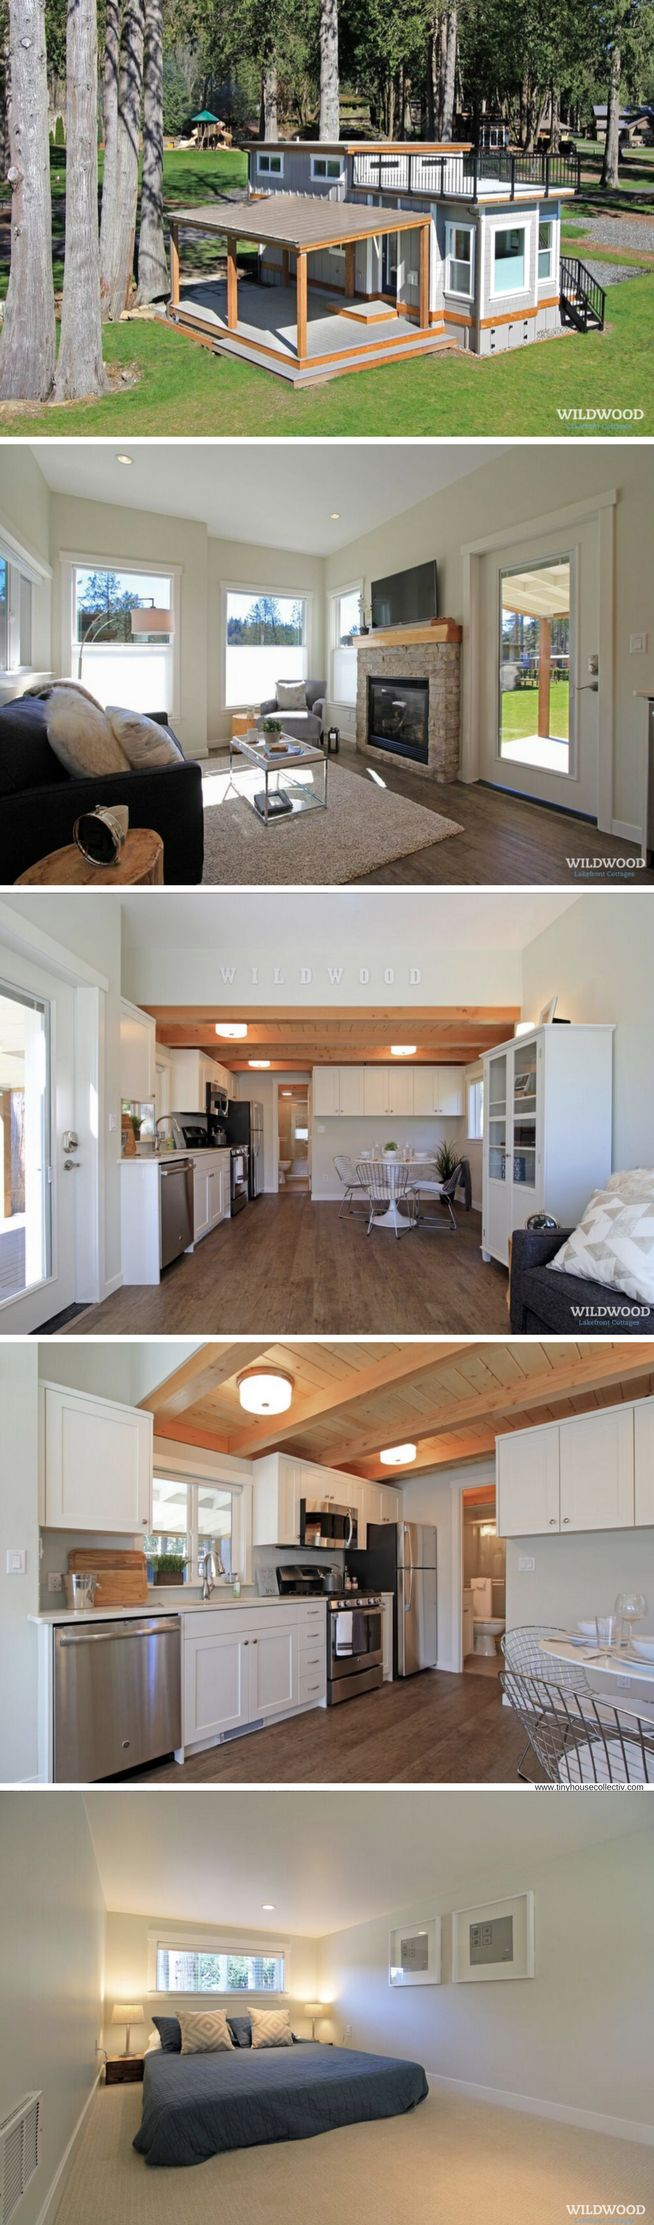 best tiny home dreams images on pinterest home ideas house